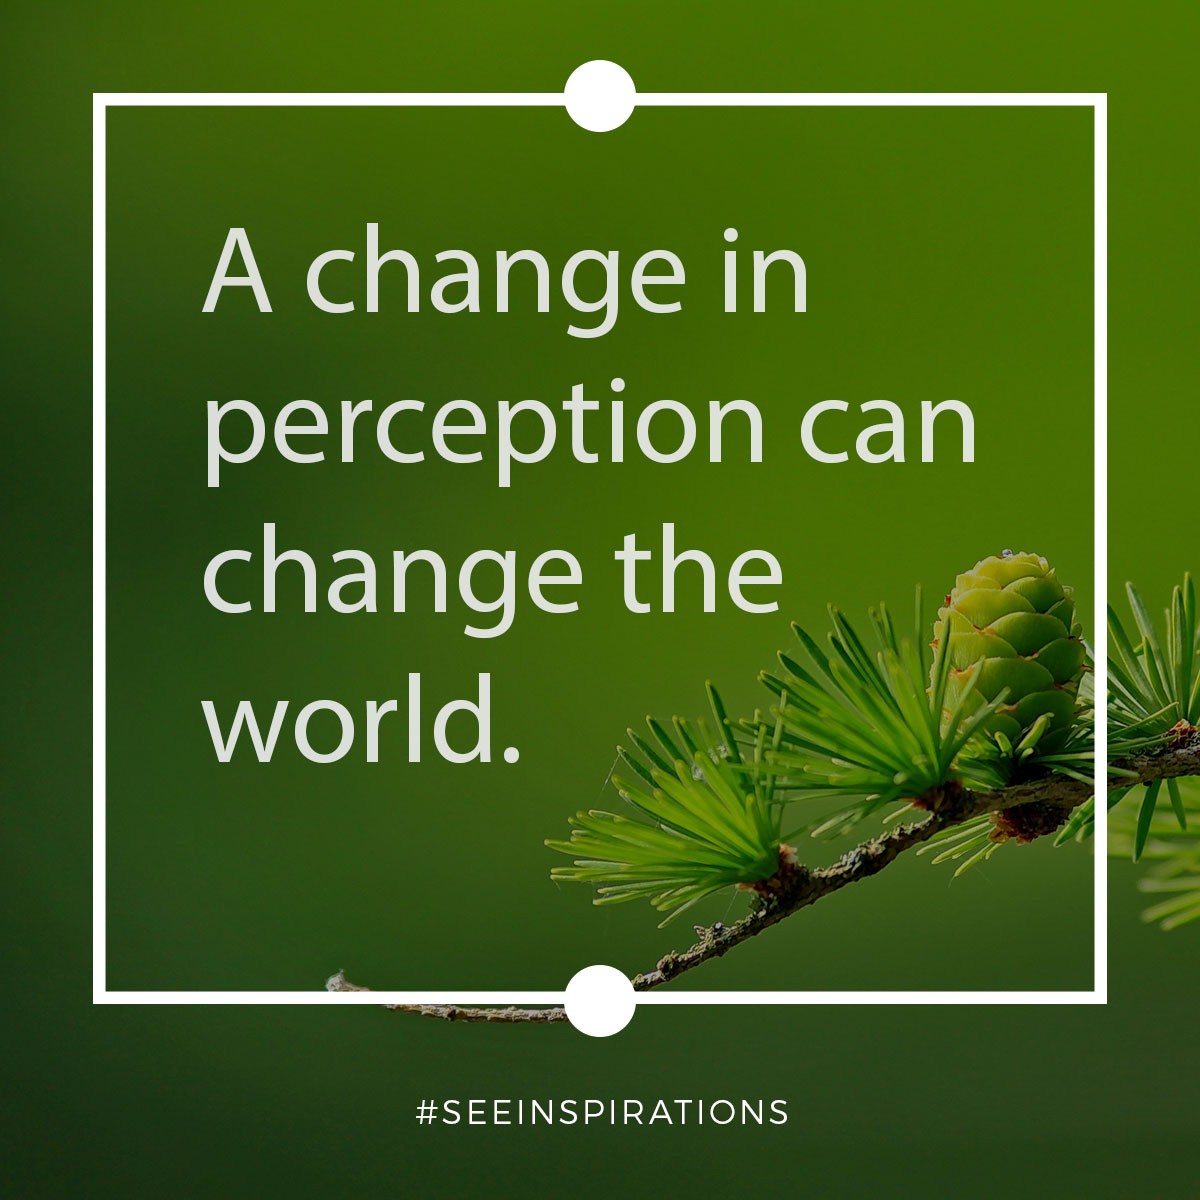 A change in perception can change the world.